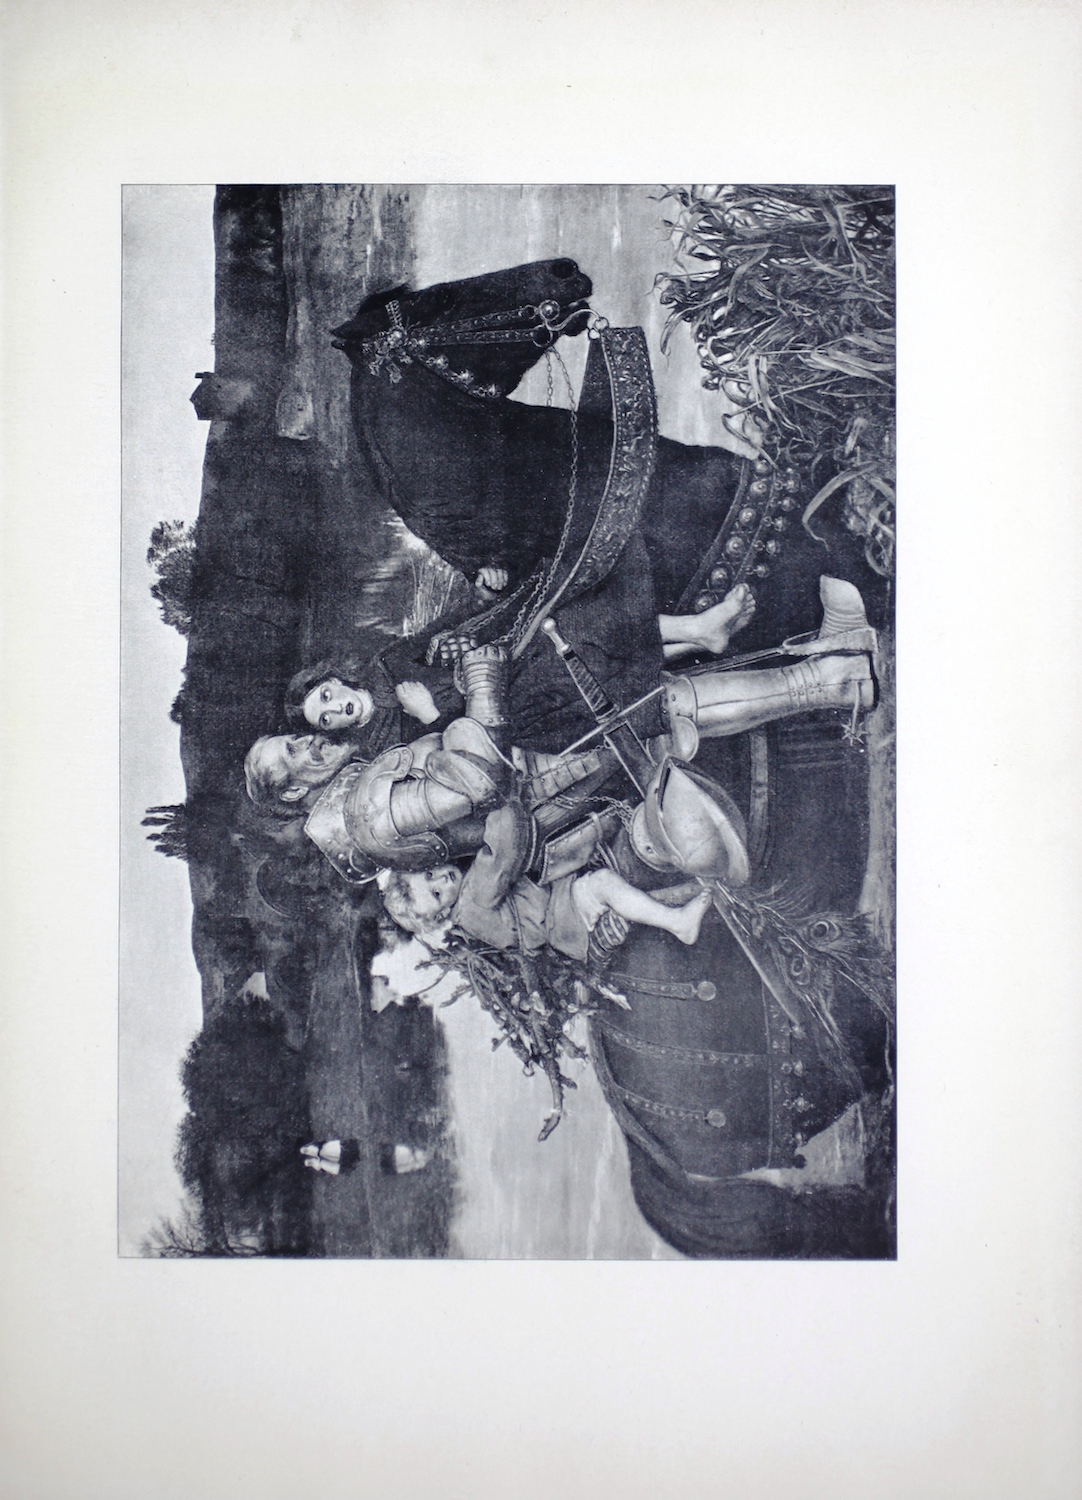 This half-tone reproduction of John Millais's 1854 oil painting is presented in reverse to the original, and is in landscape orientation. It depicts a knight, Sir Isumbras, modelled by Colonel Campbell, taking two children across a river on his horse. Because the image is reversed, they travel across the image from left to right. The knight is old with gray hair and a beard. He is wearing full-body armour, but his helmet hangs at his waist by his sword, with a peacock feather hanging from it. In his arms, the knight holds a girl child wearing a dress, clasping a shawl around her shoulders with her right hand. She holds onto the horse's main with her left hand. She is barefoot with her ankles crossed. She gazes up at the knight's face. Behind him, a small boy child, modeled by Millais's son, holds on with his arms around Sir Isumbras's waist. The boy wears a short tunic, and his trousers are rolled up over his knees. He sits on a pillow and his bare right leg is visible to the viewer. The boy carries a bundle of branches tied to his back and he gazes directly at the viewer. All three figures sit on top of a black steed that is ornately harnessed in leather and gold. The horse is walking in the river with water up to its chest. There are reeds in front of the horse in the right foreground of the image. Perspective allows the viewer to see both banks of the river in the distance. There are two women, who appear to be nuns, walking along the far bank, facing the viewer. Their images are reflected in the water. In the central distance there is an arched stone bridge, and in the right-hand side of the image is a large building, possibly a castle. Dense woods surround the buildings in the background.